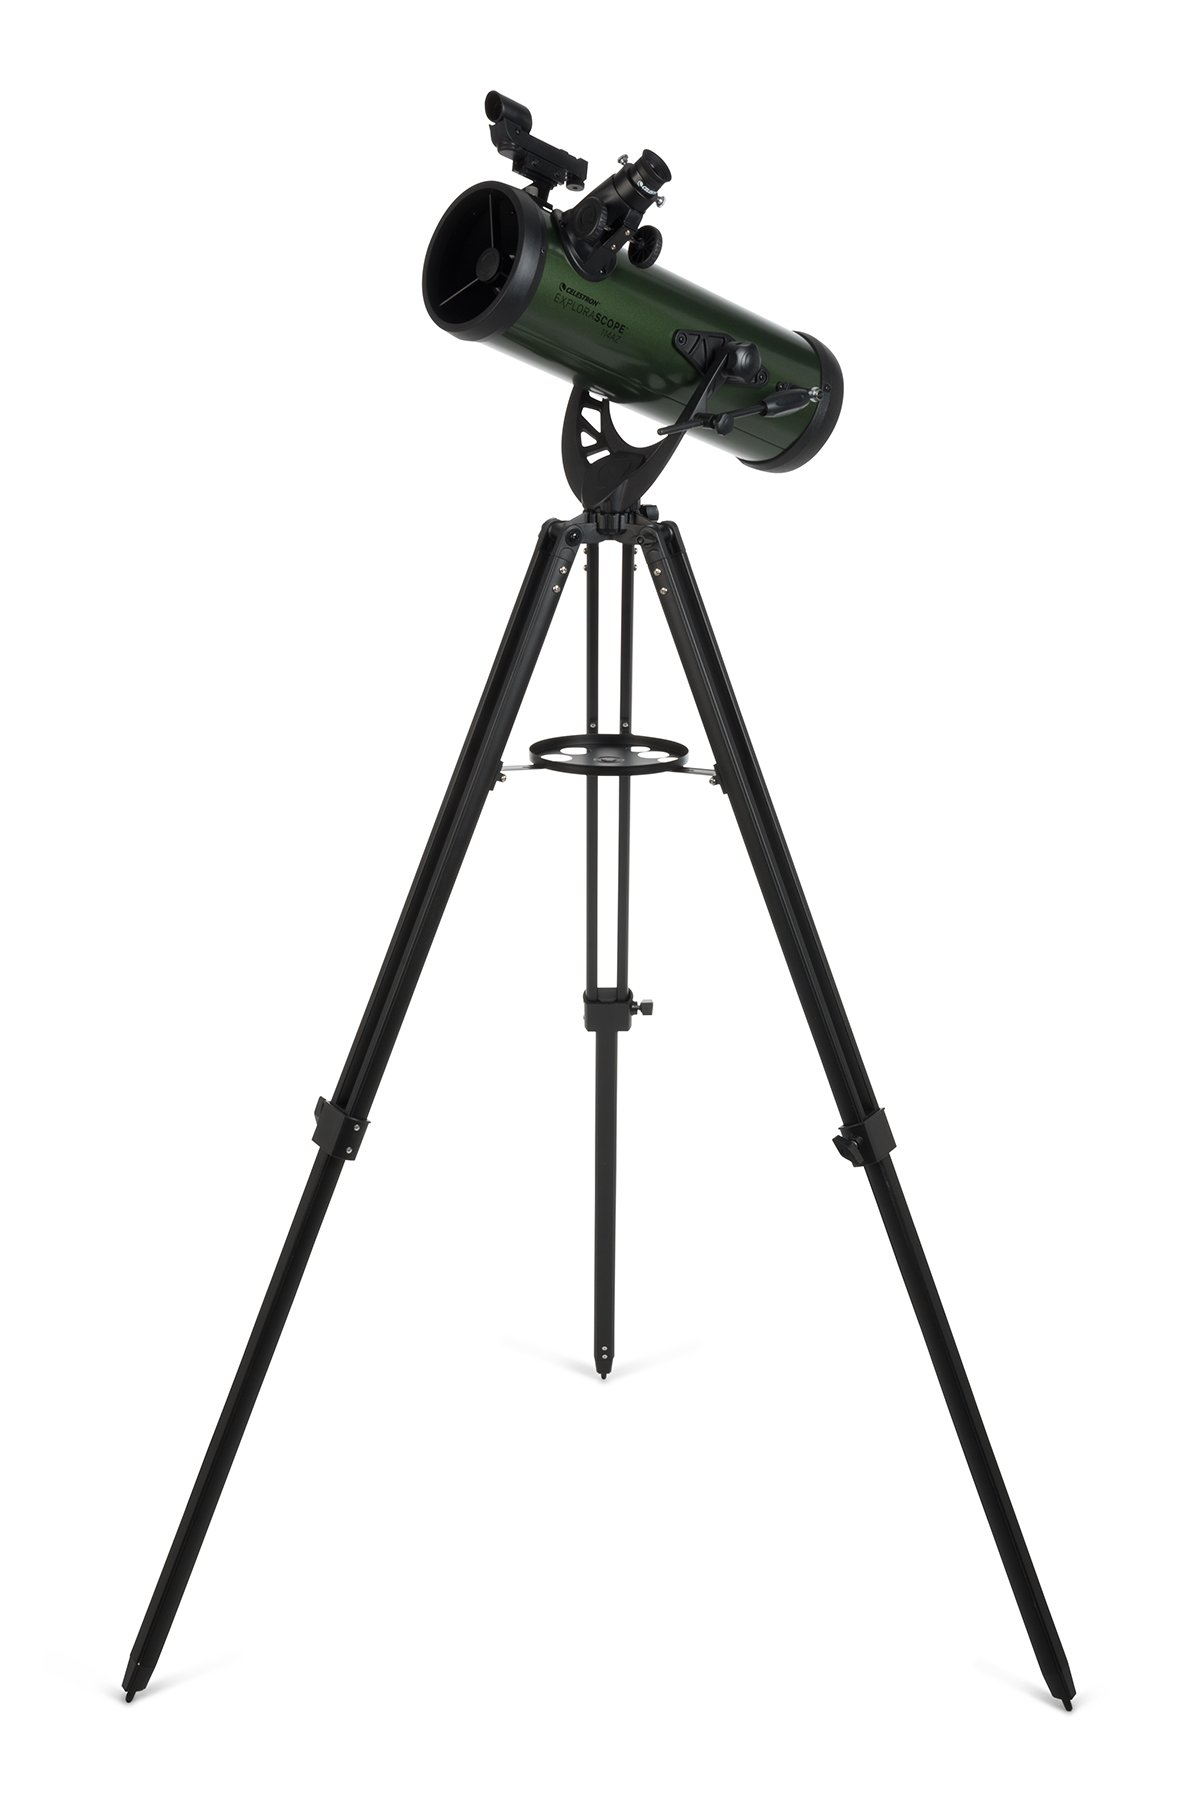 Celestron Explorascope Discover The Moon Or Rings of Saturn Explorascope 60AZ Refractor, Green (22100)